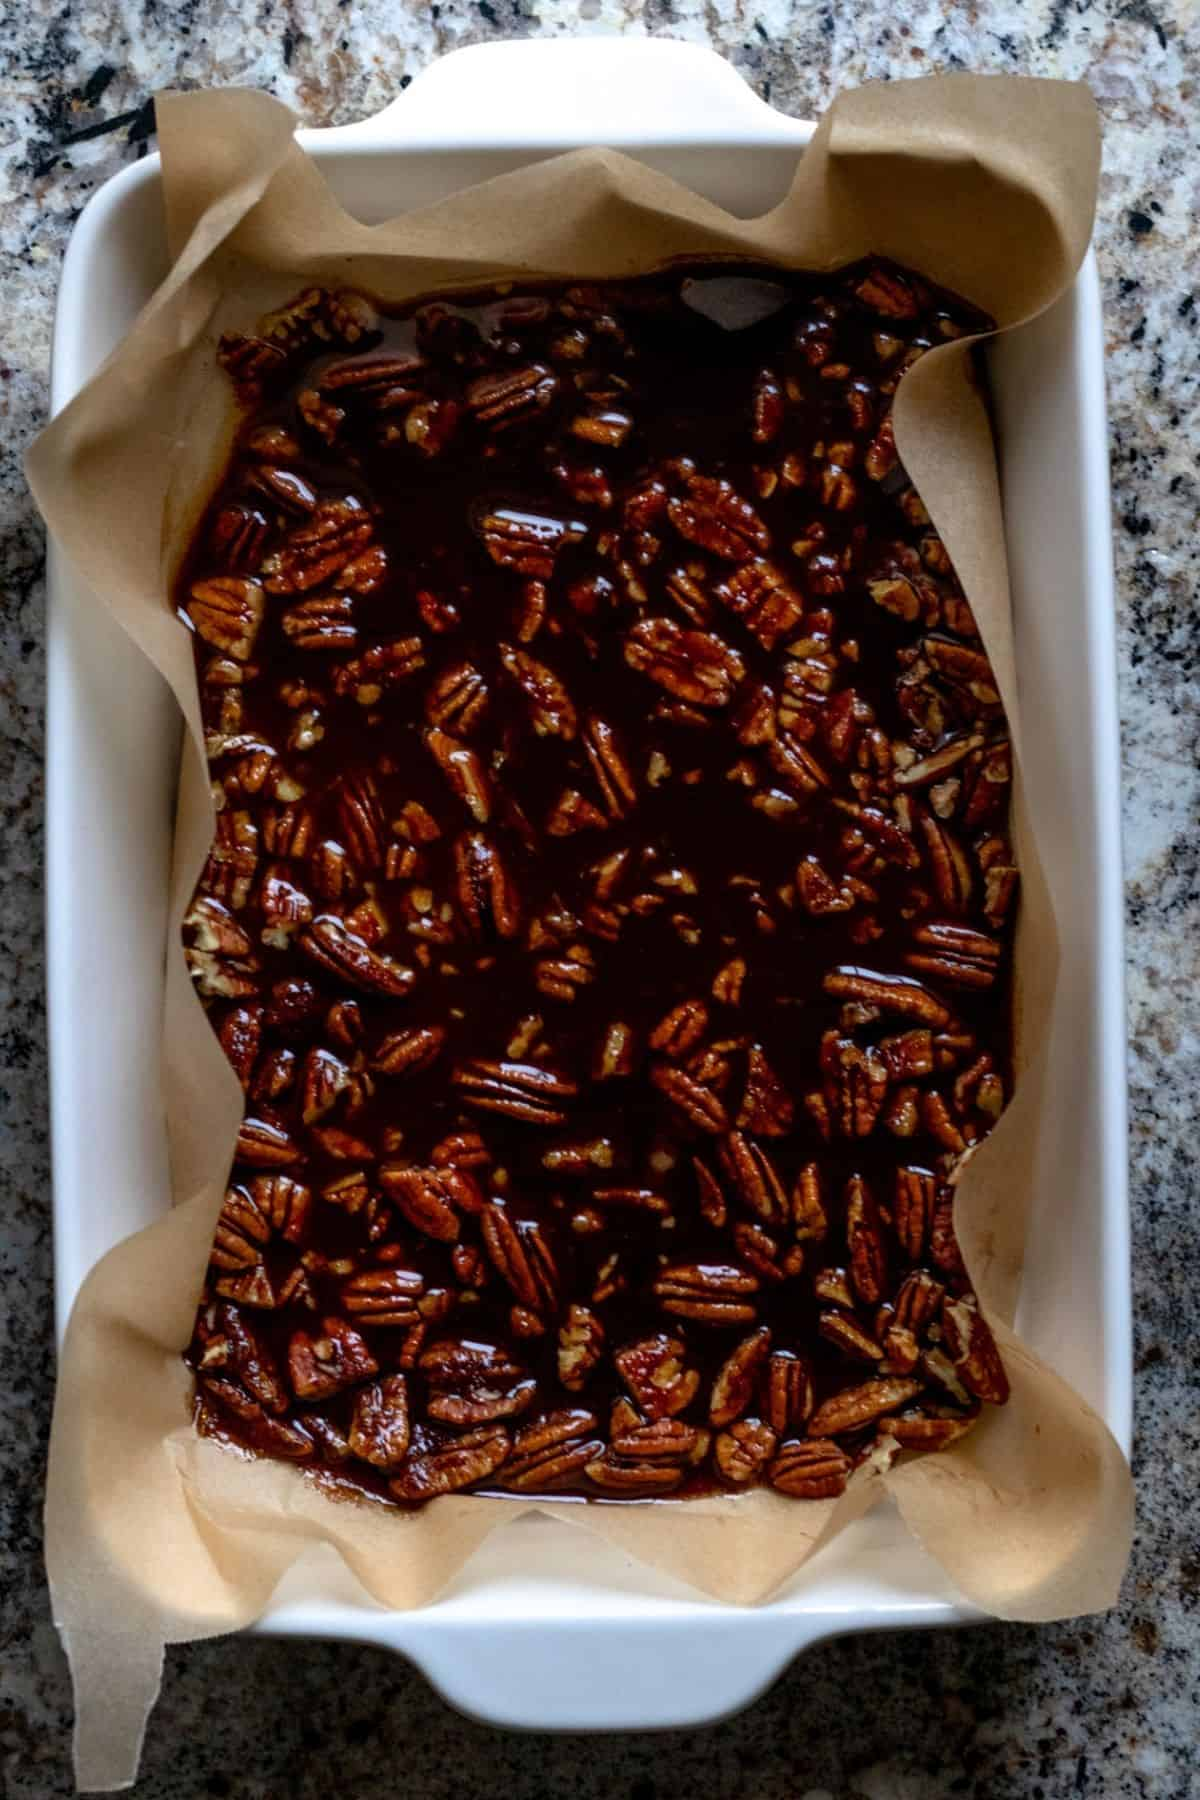 Glaze poured over chopped pecans in casserole dish.